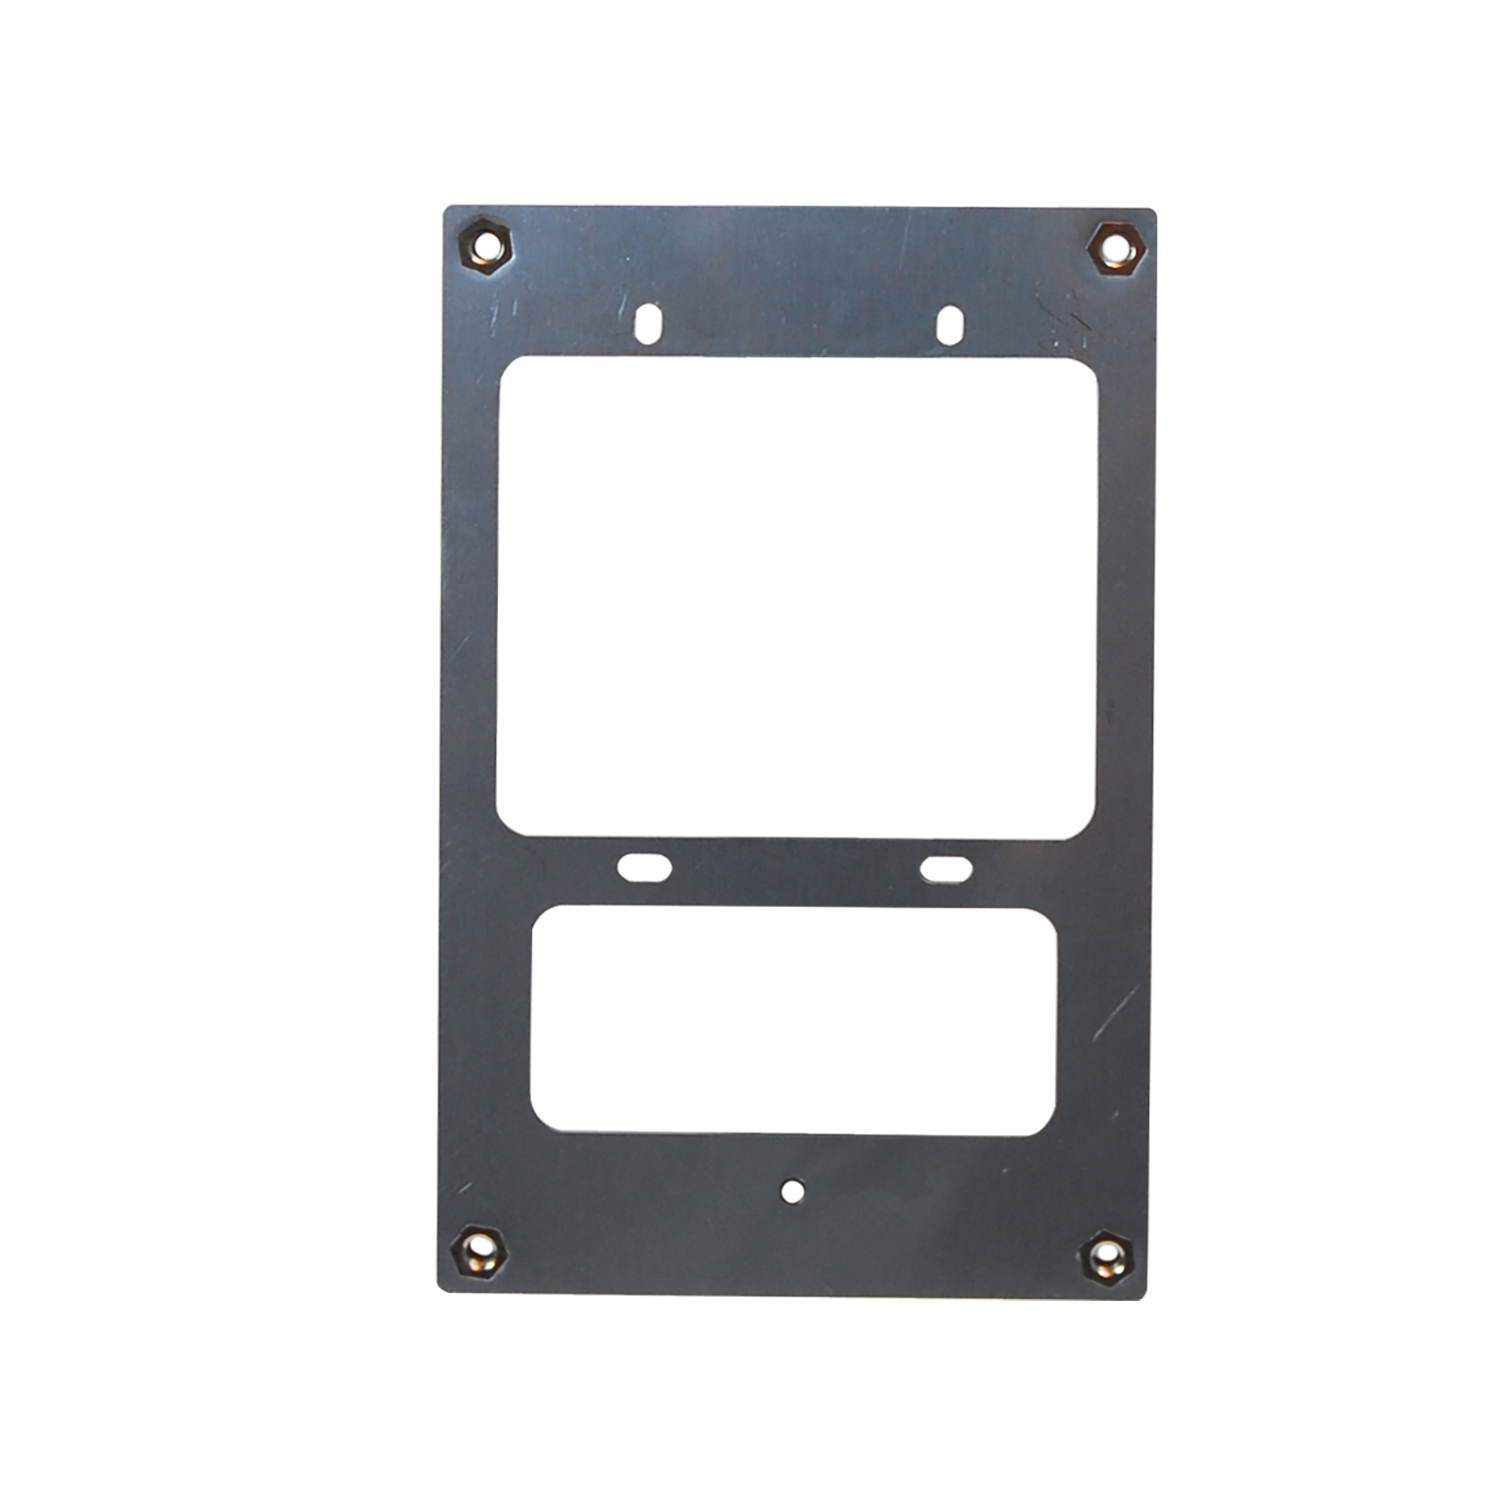 TA-5, Bracket for US 2 GANG Back Box